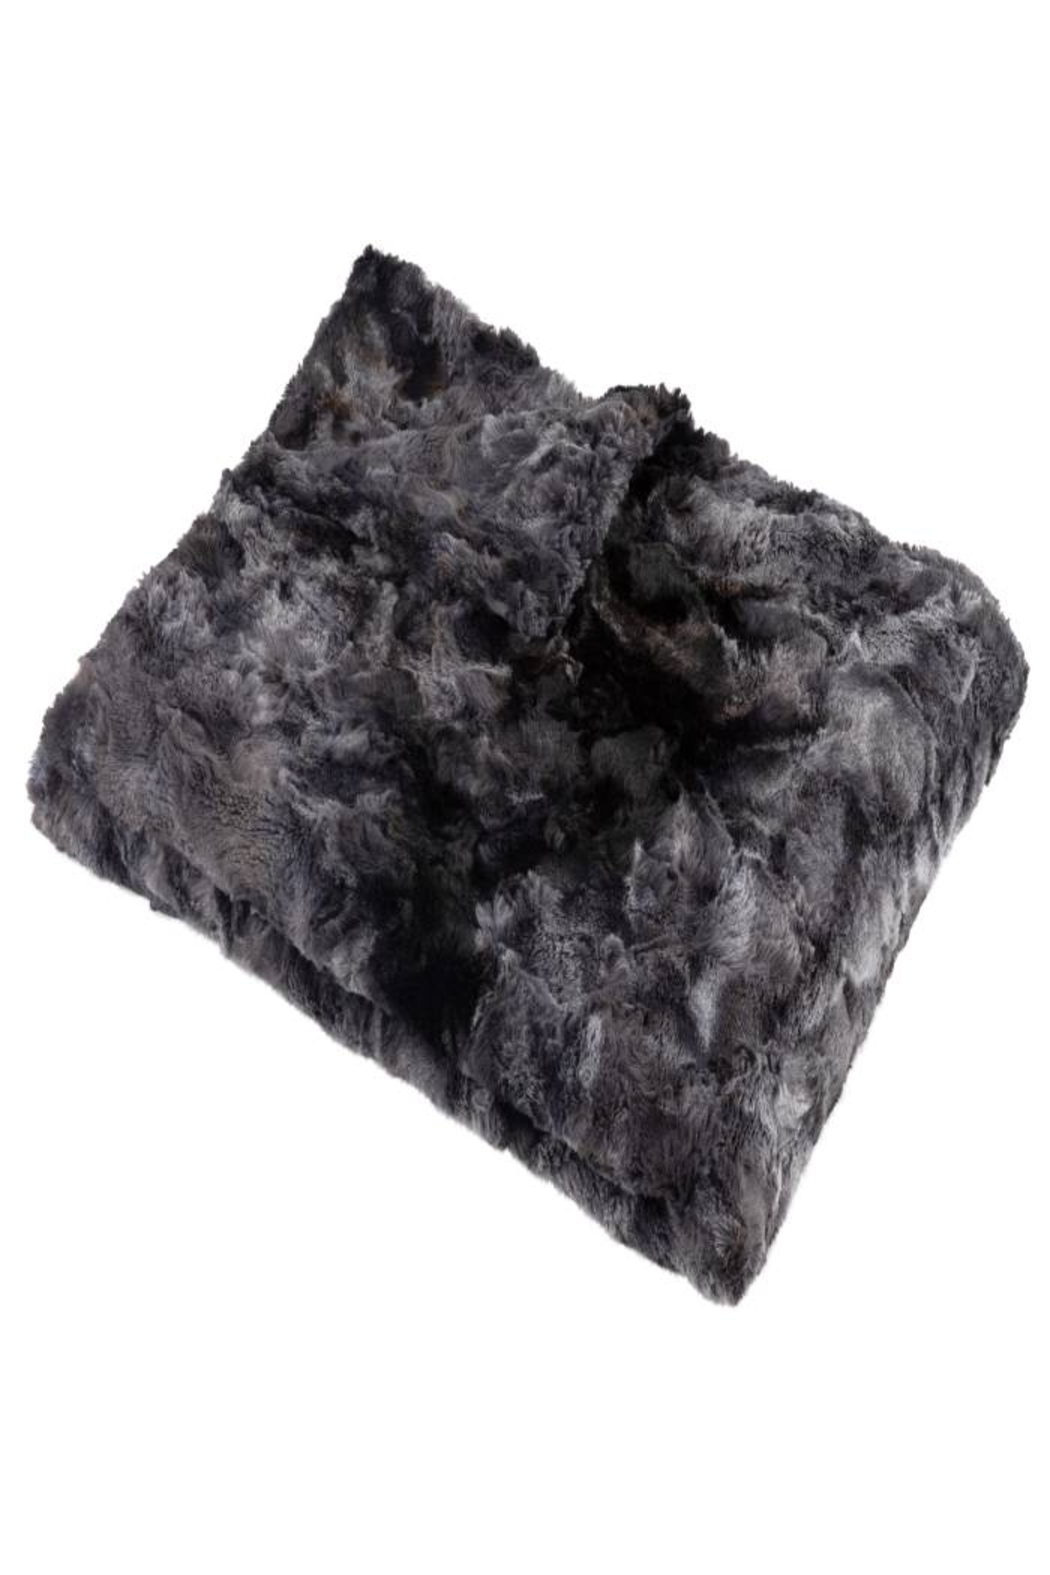 MINI POCKET Mini Pocket Collection Faux Fur Handmade in USA Infant Baby Blanket (Star Night) - Main Image